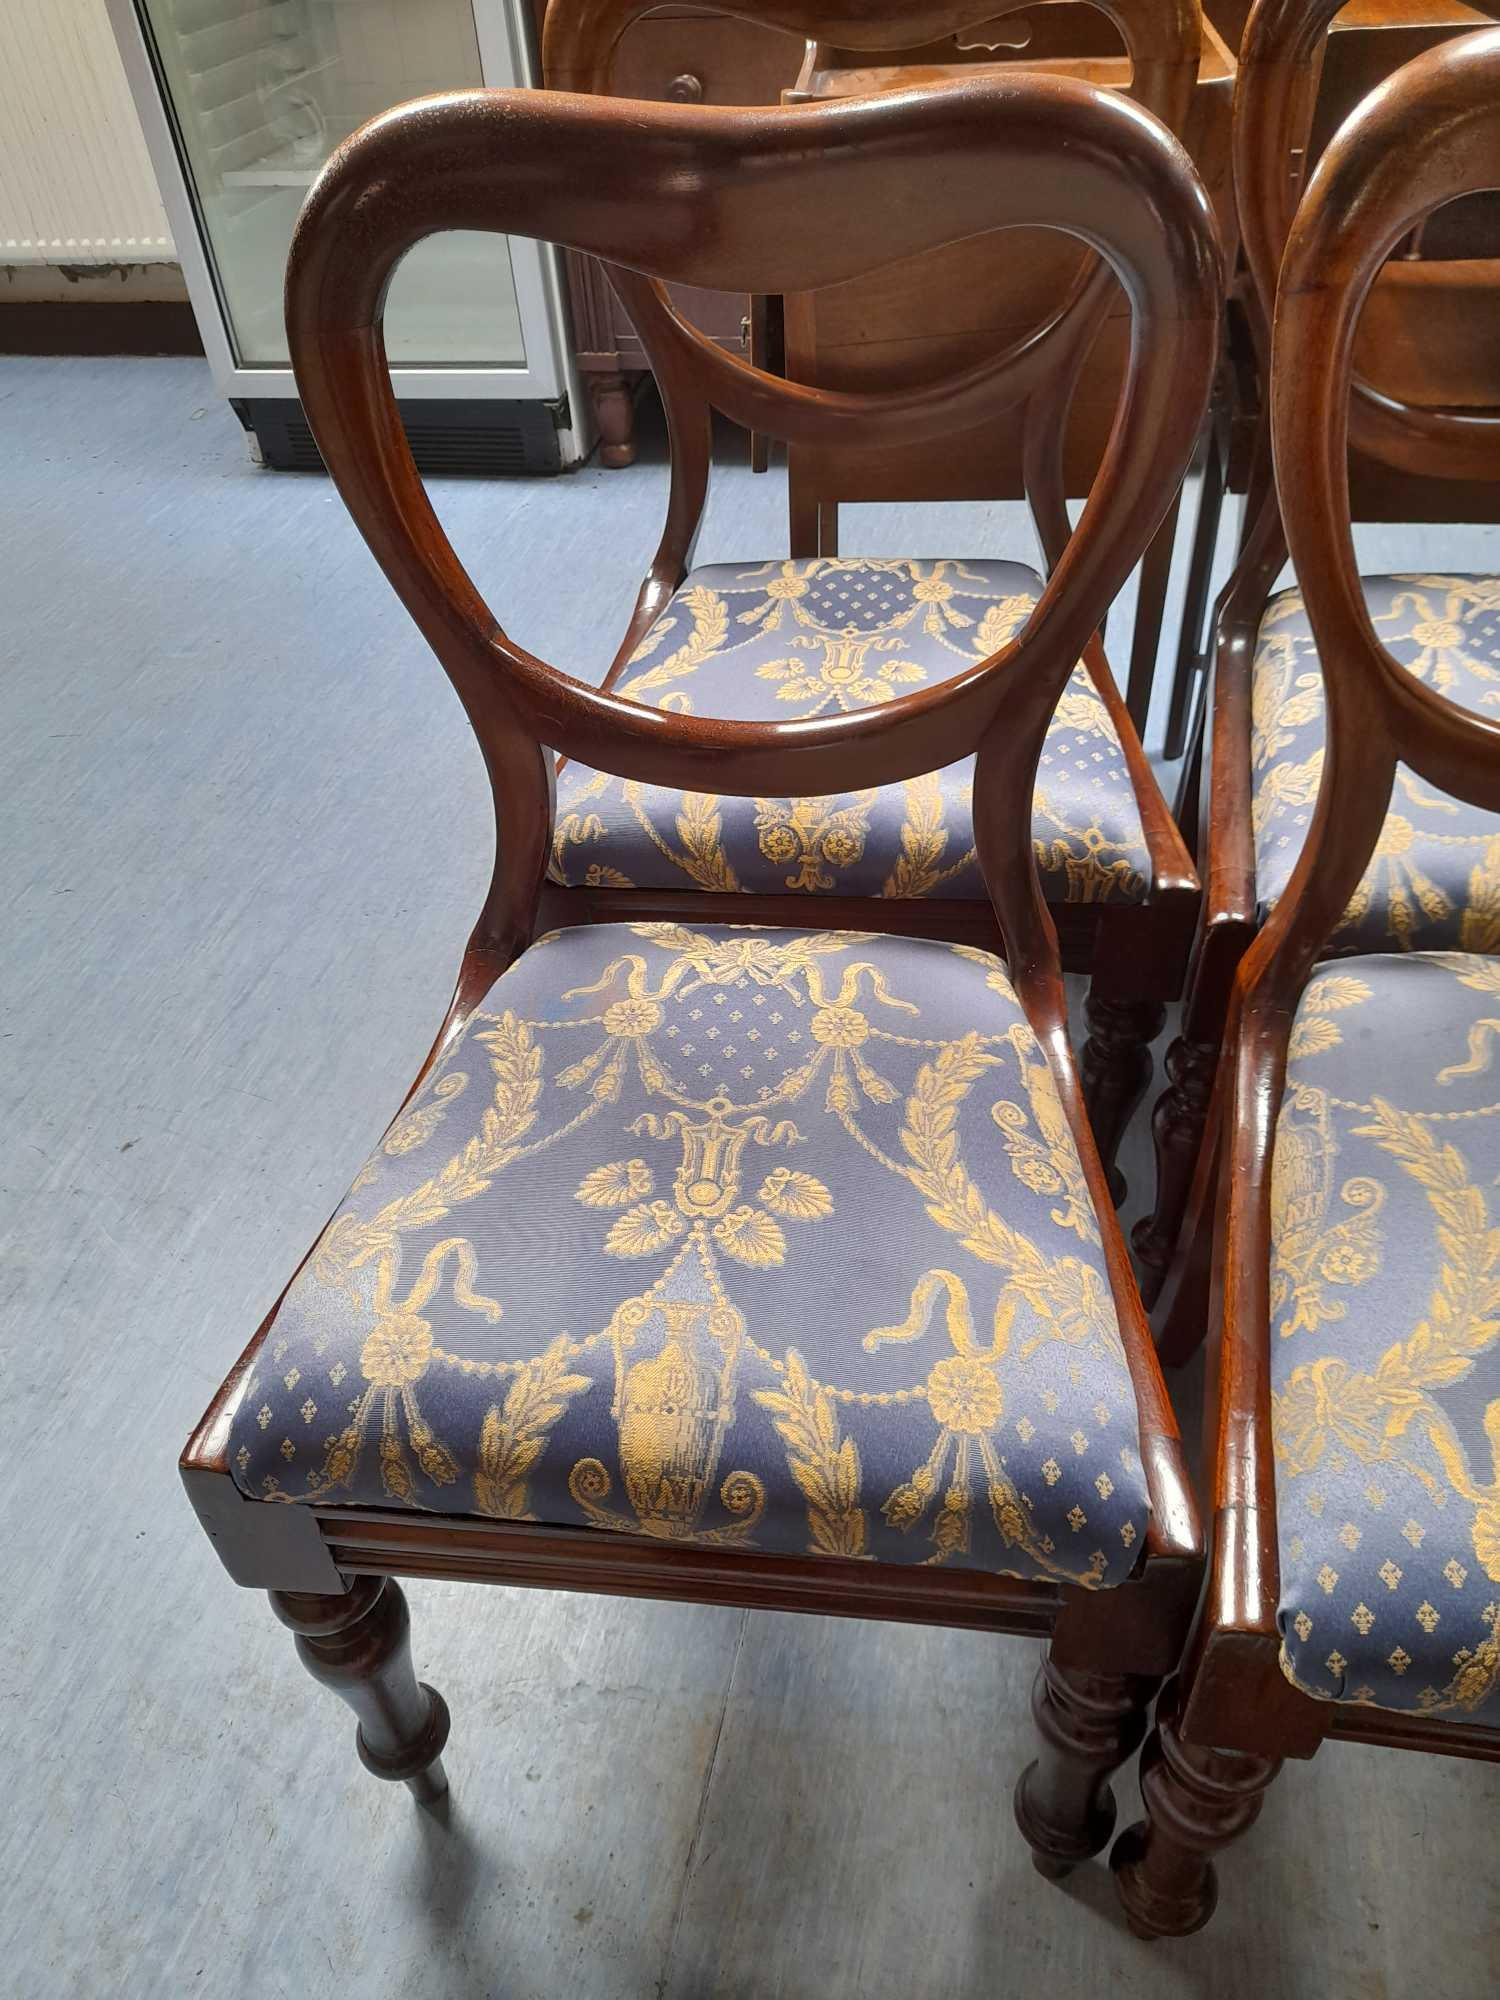 8 VICTORIAN MAHOGANY DINING CHAIRS - Image 3 of 3